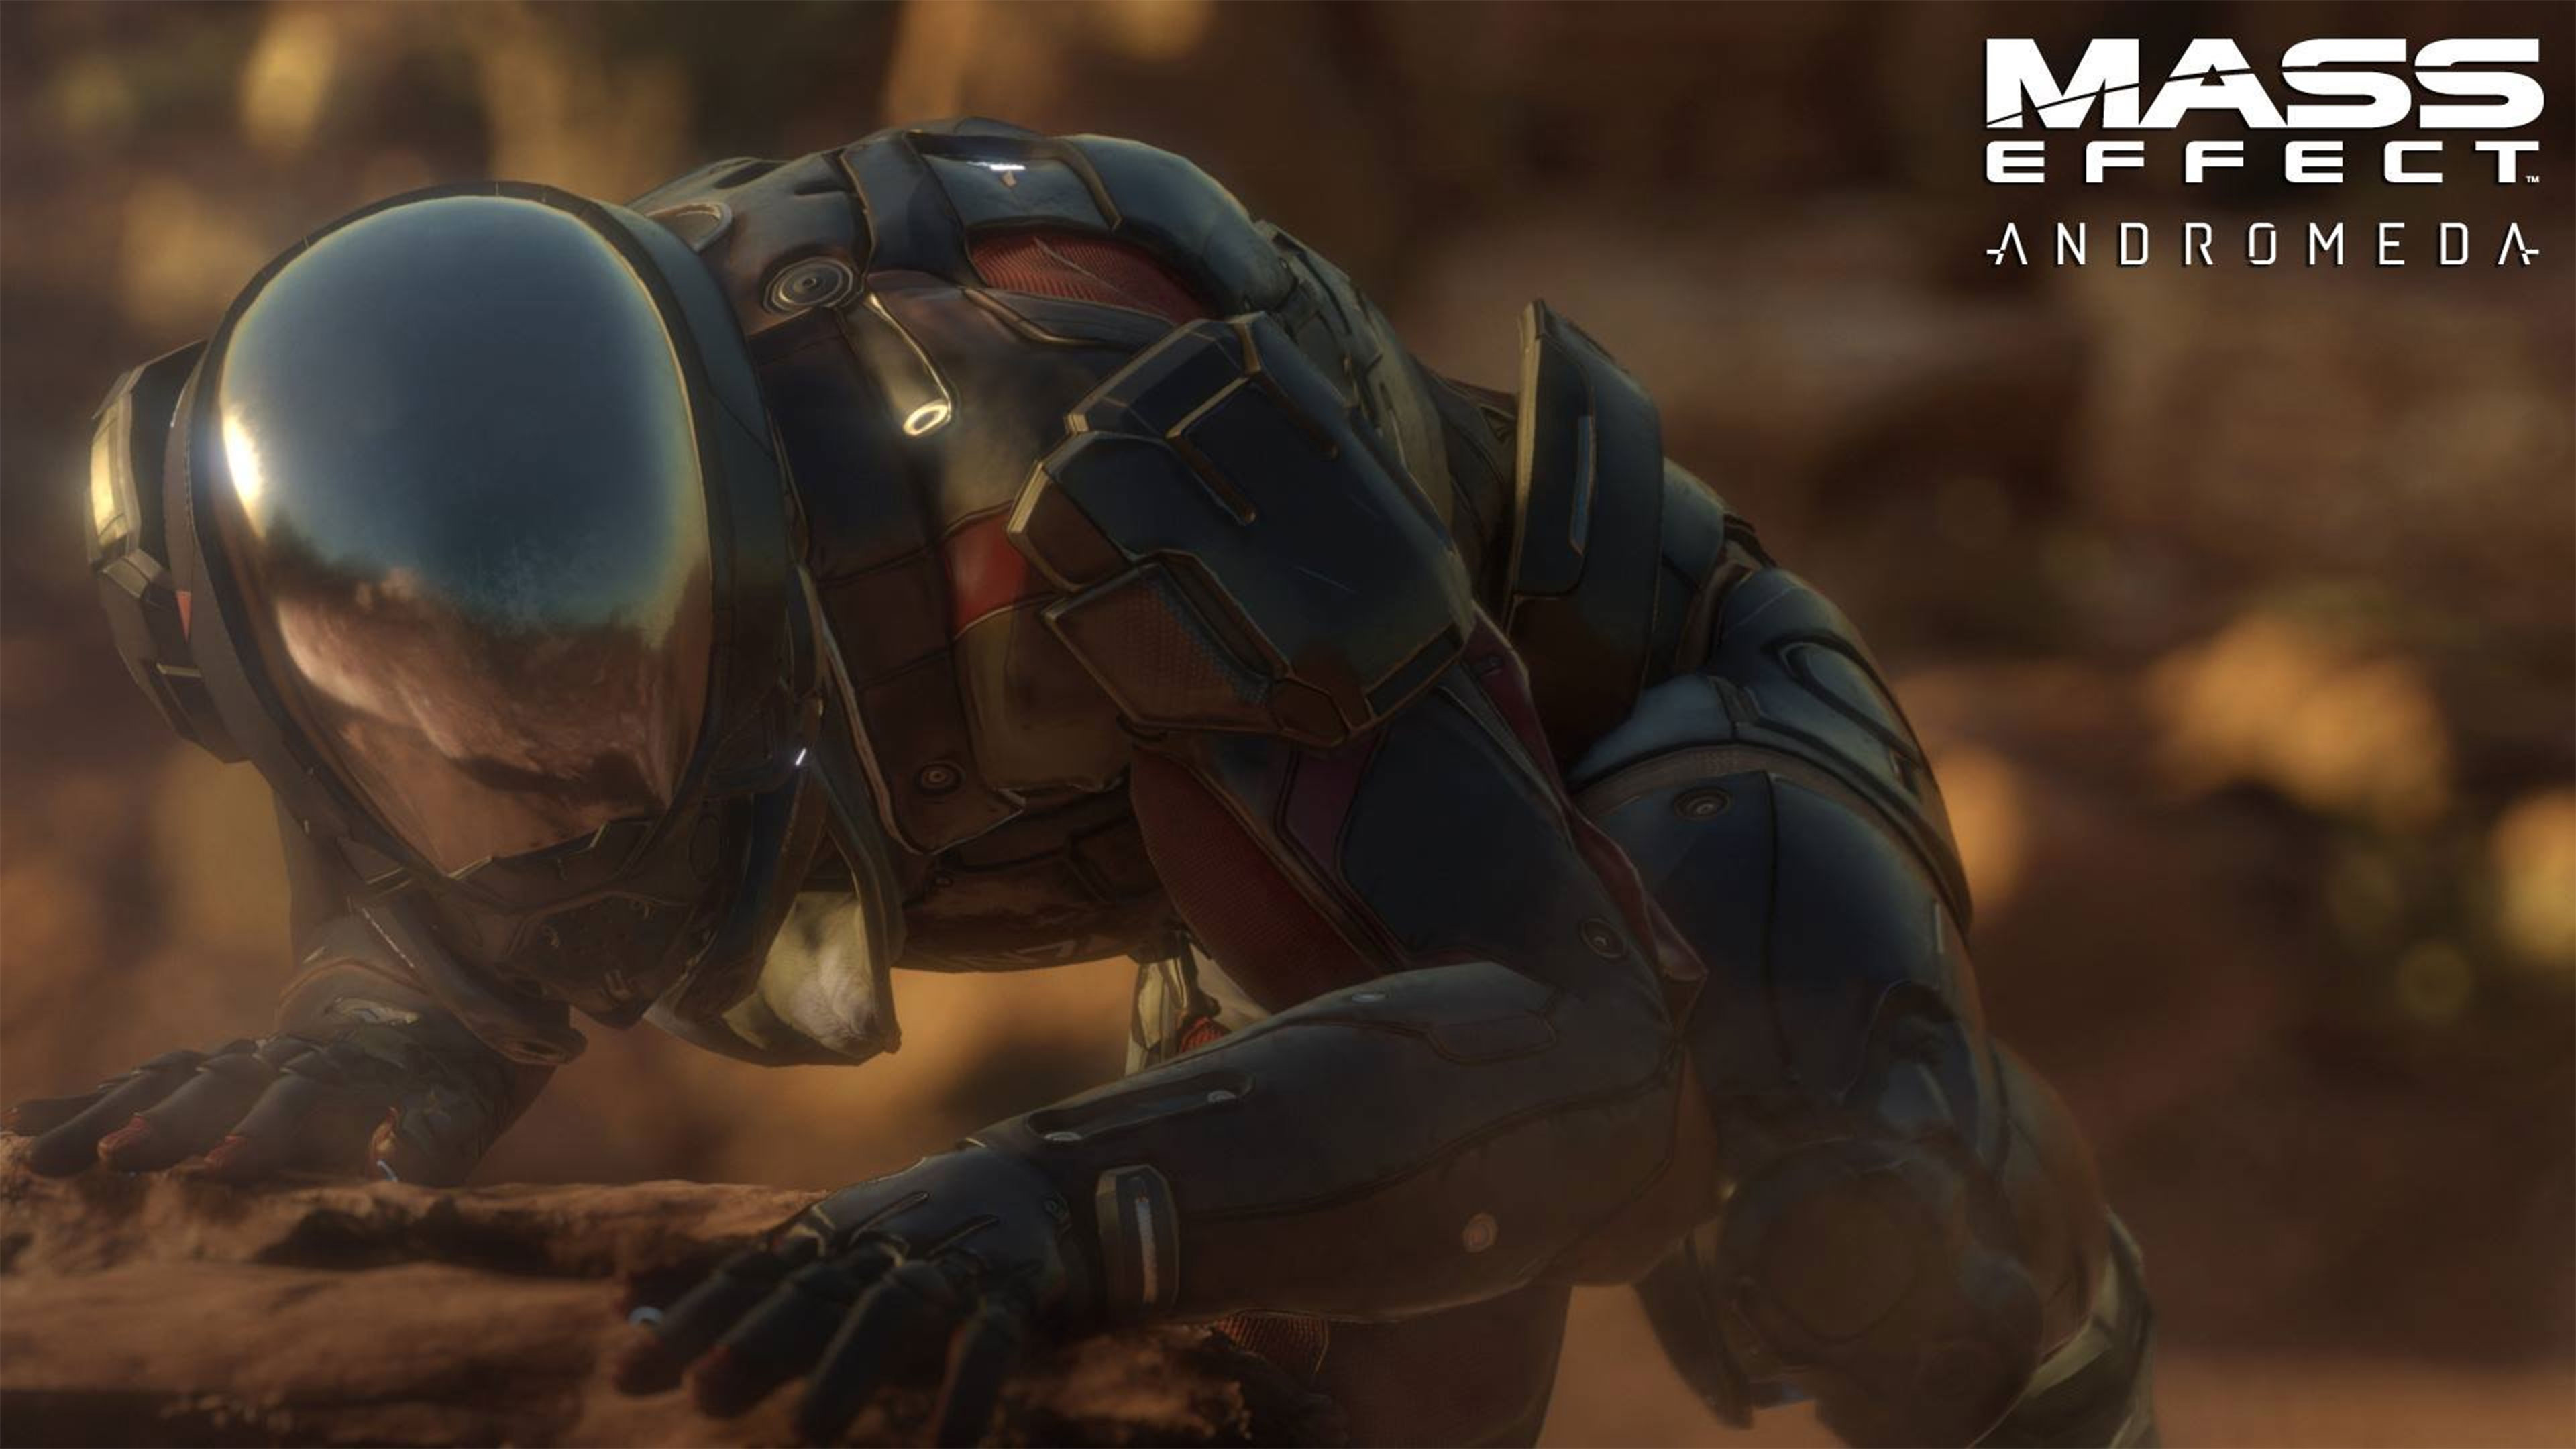 Mass Effect Andromeda Wallpaper: Mass Effect Andromeda Wallpapers In Ultra HD